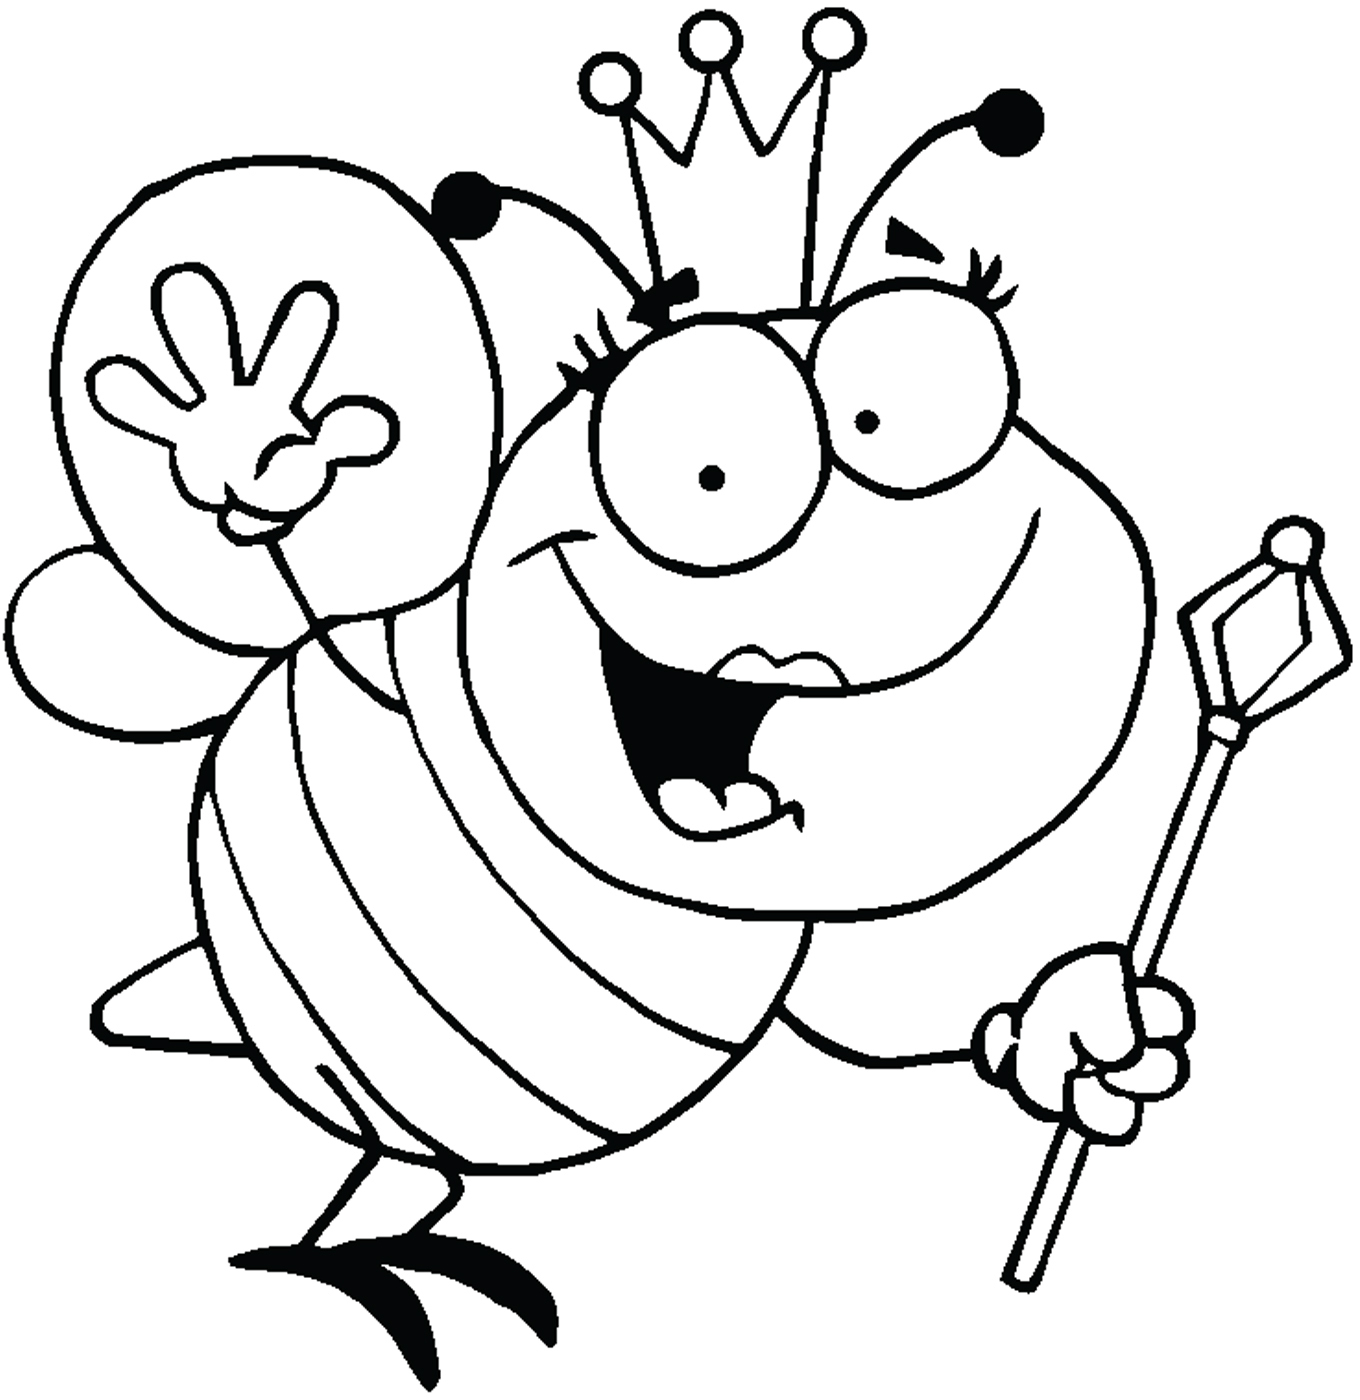 Queen clipart black and white #12